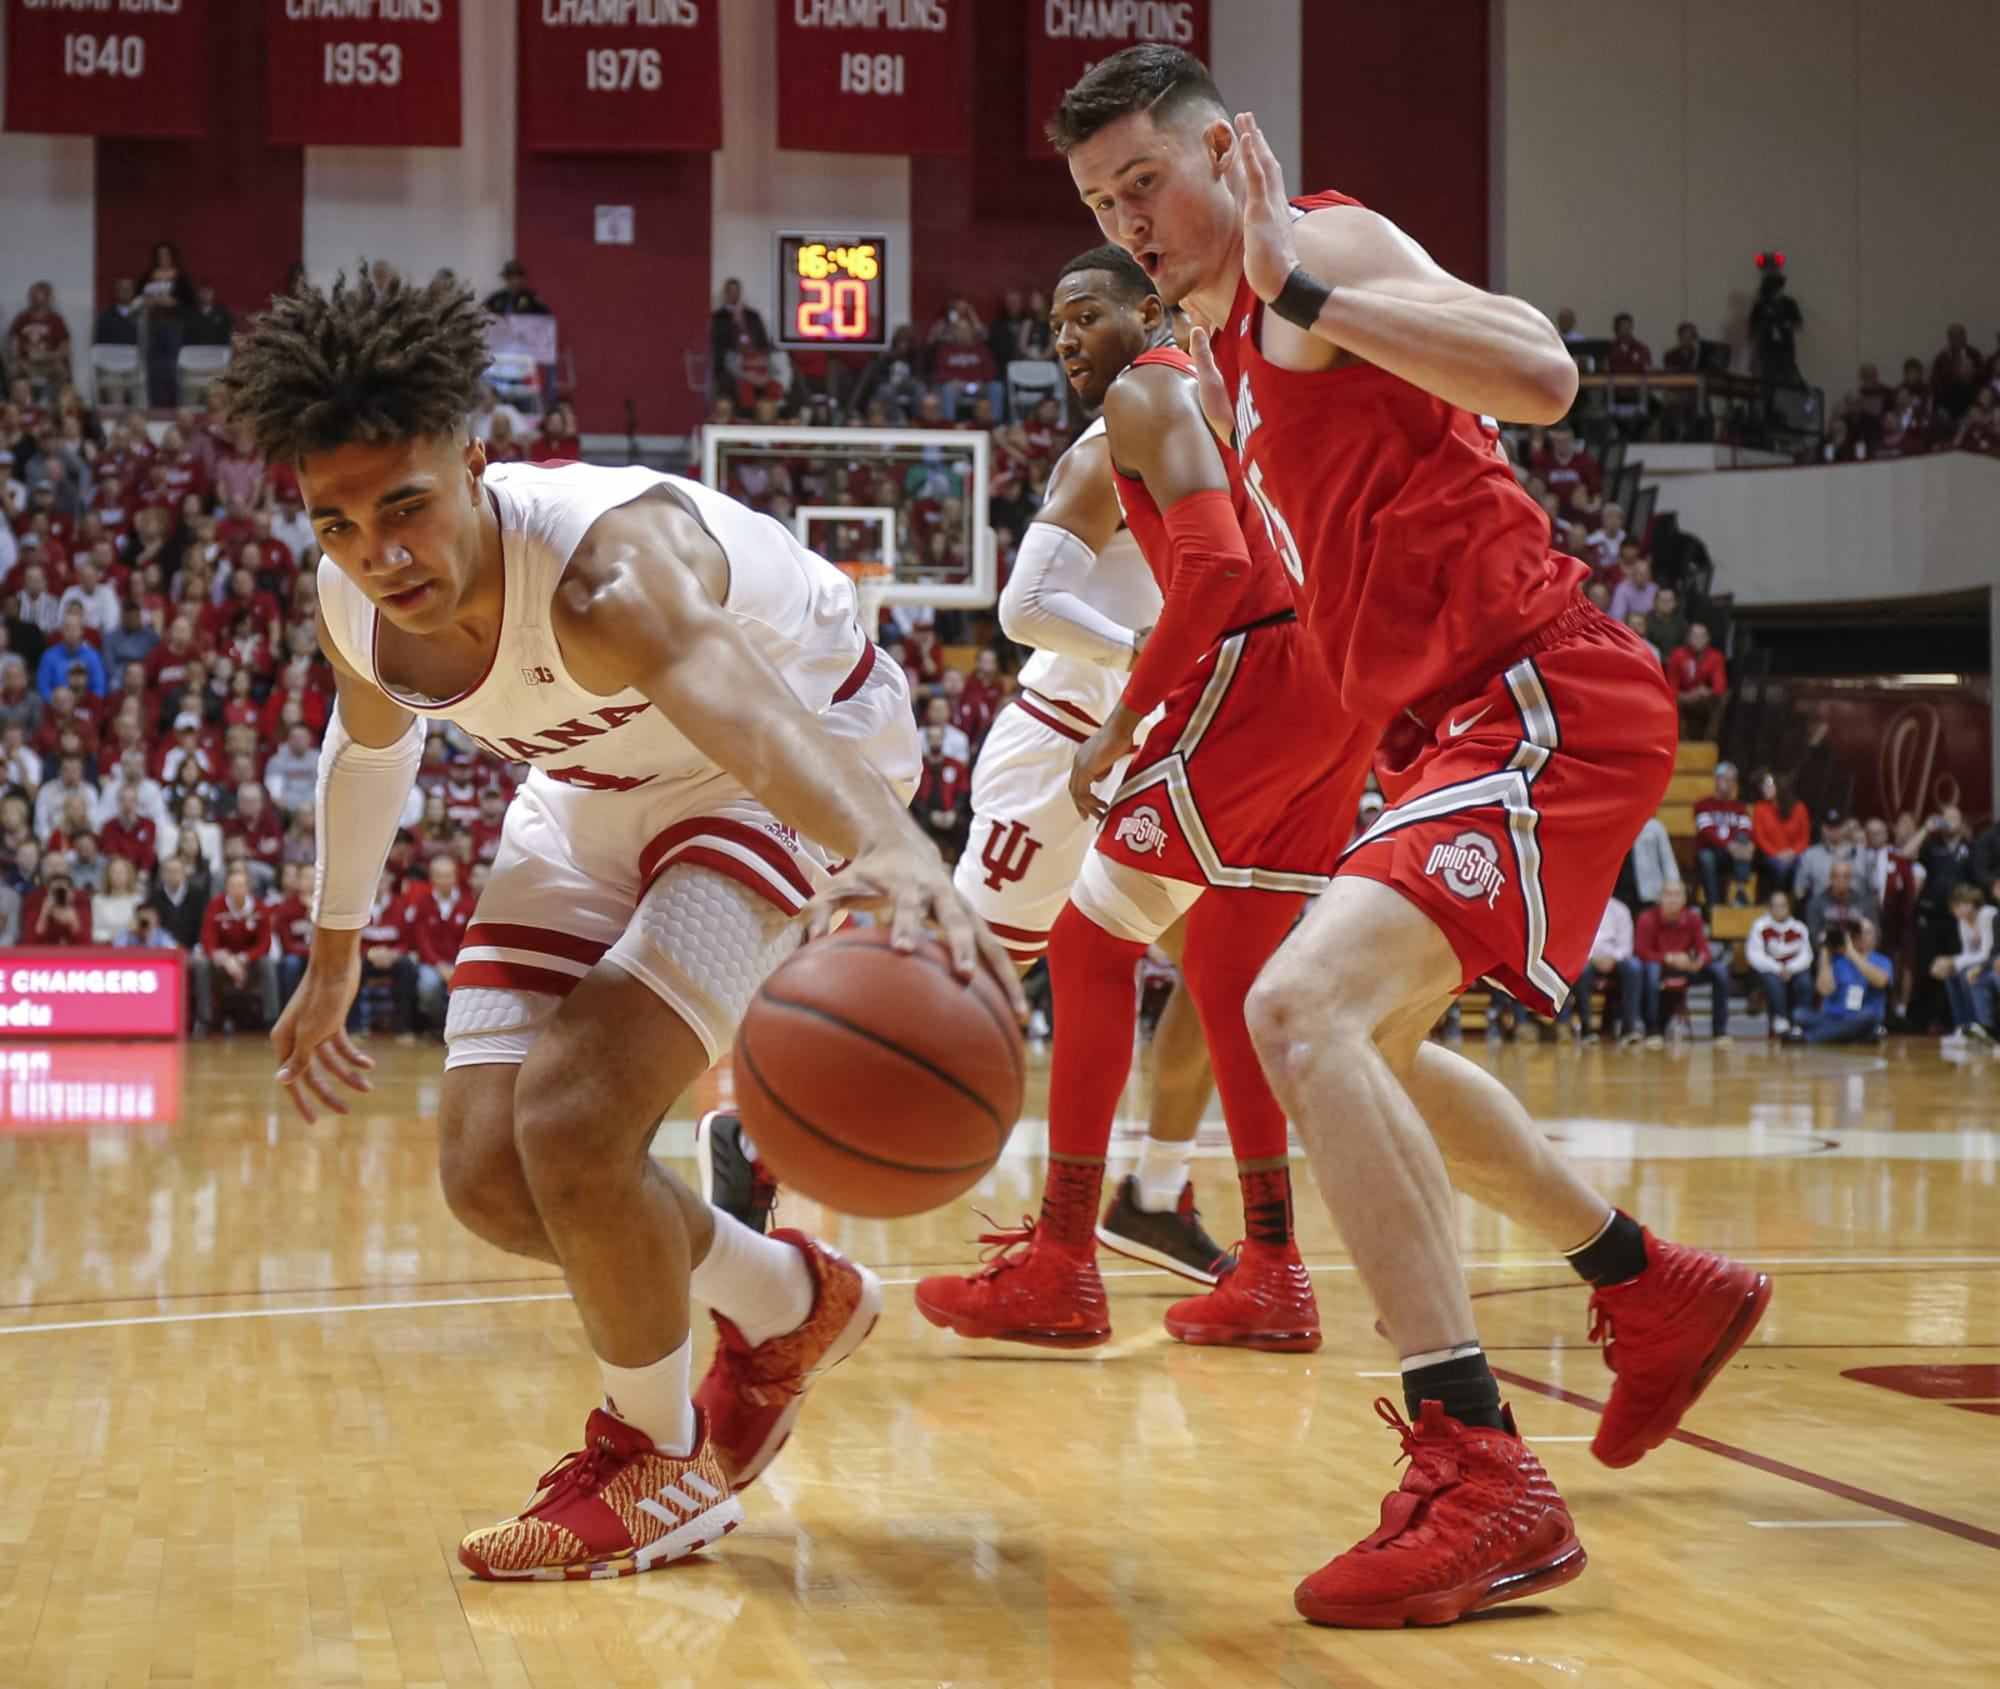 Indiana Basketball Vs Ohio State: Know Your Opponent